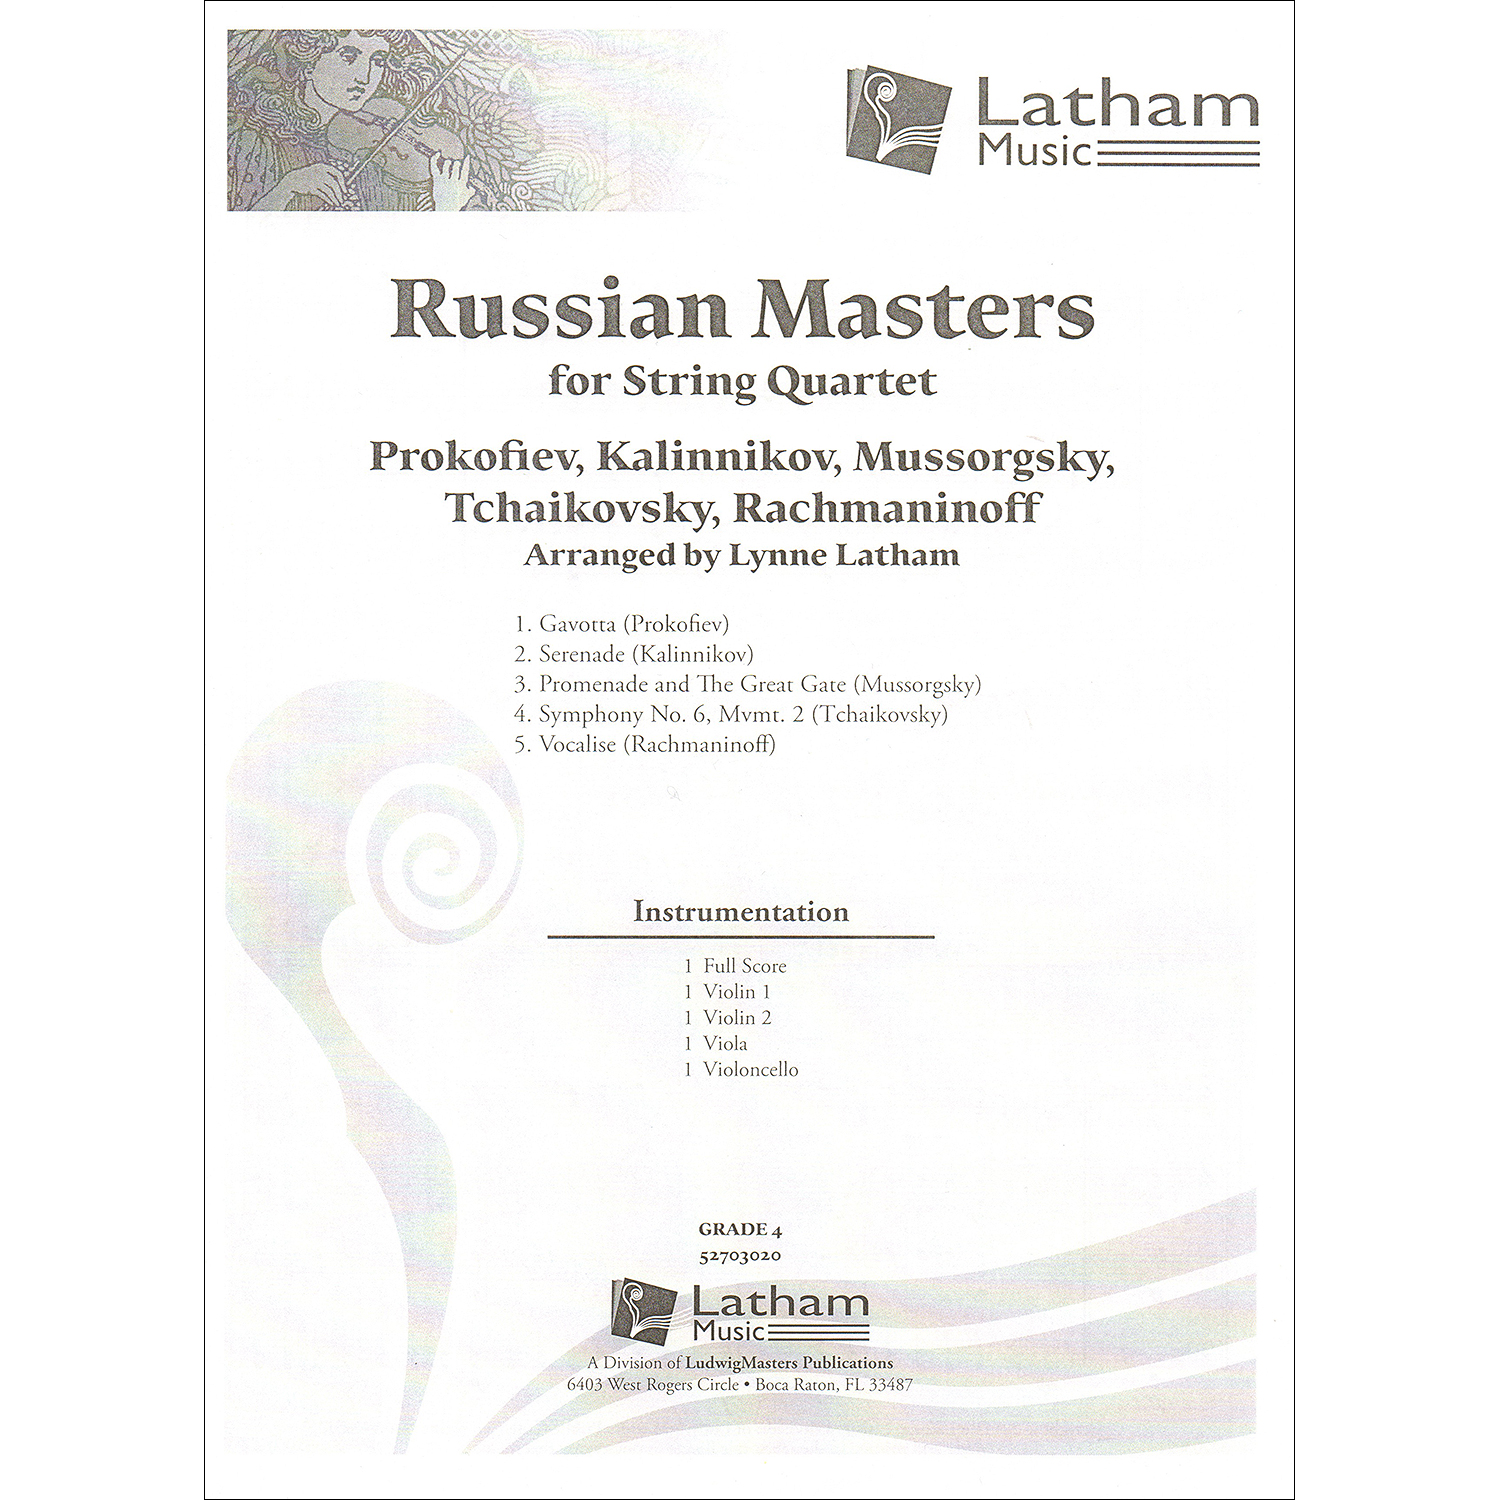 Russian Masters for string quartet, arranged by Lynne Latham, extra score  (Latham Music))